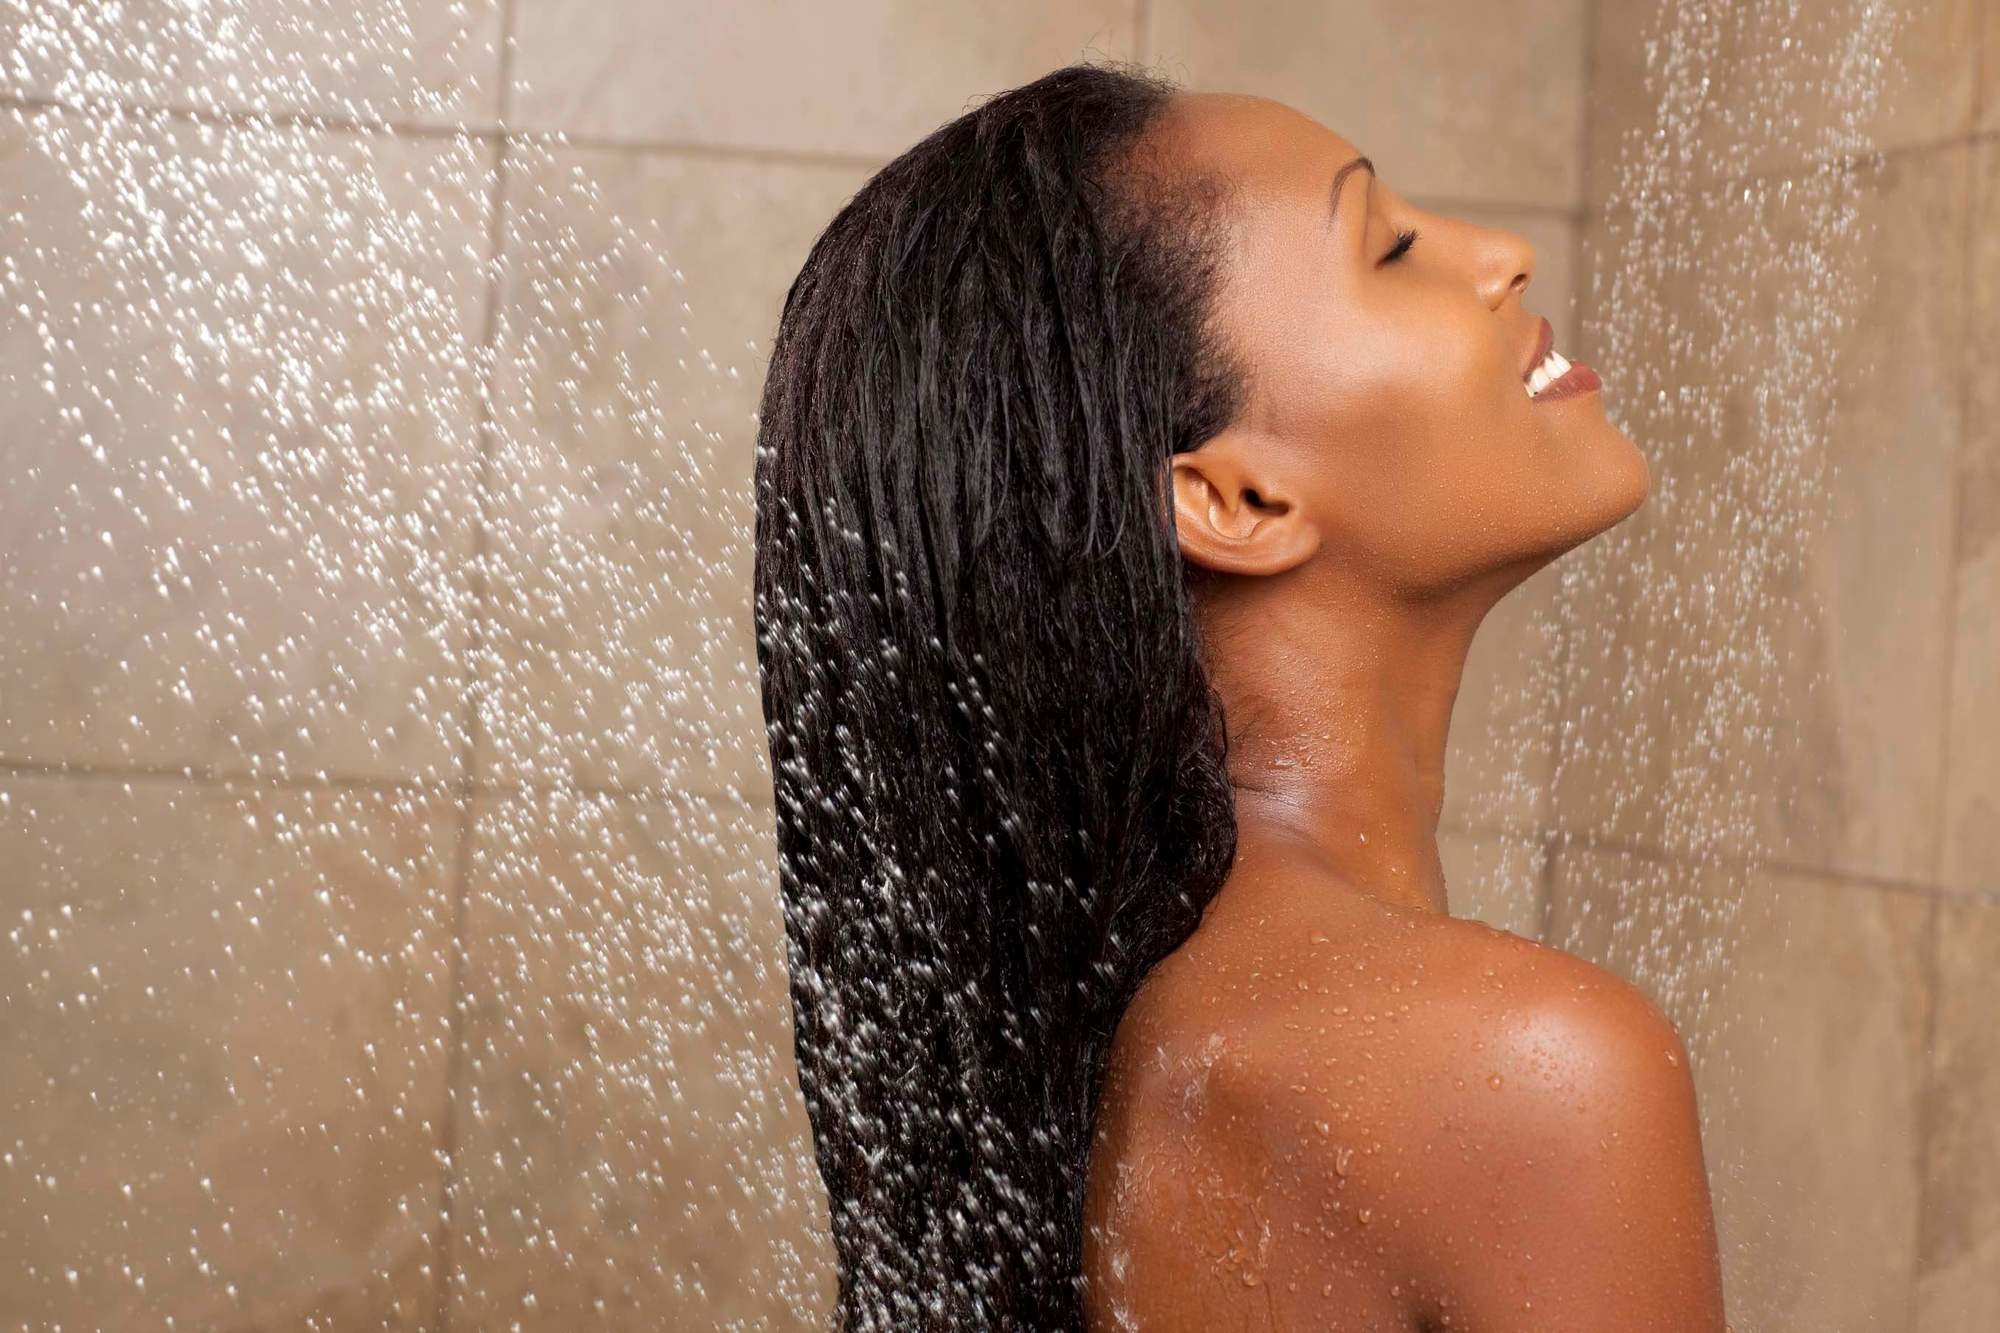 Is it Okay to Shower with Your Hair Extension on?